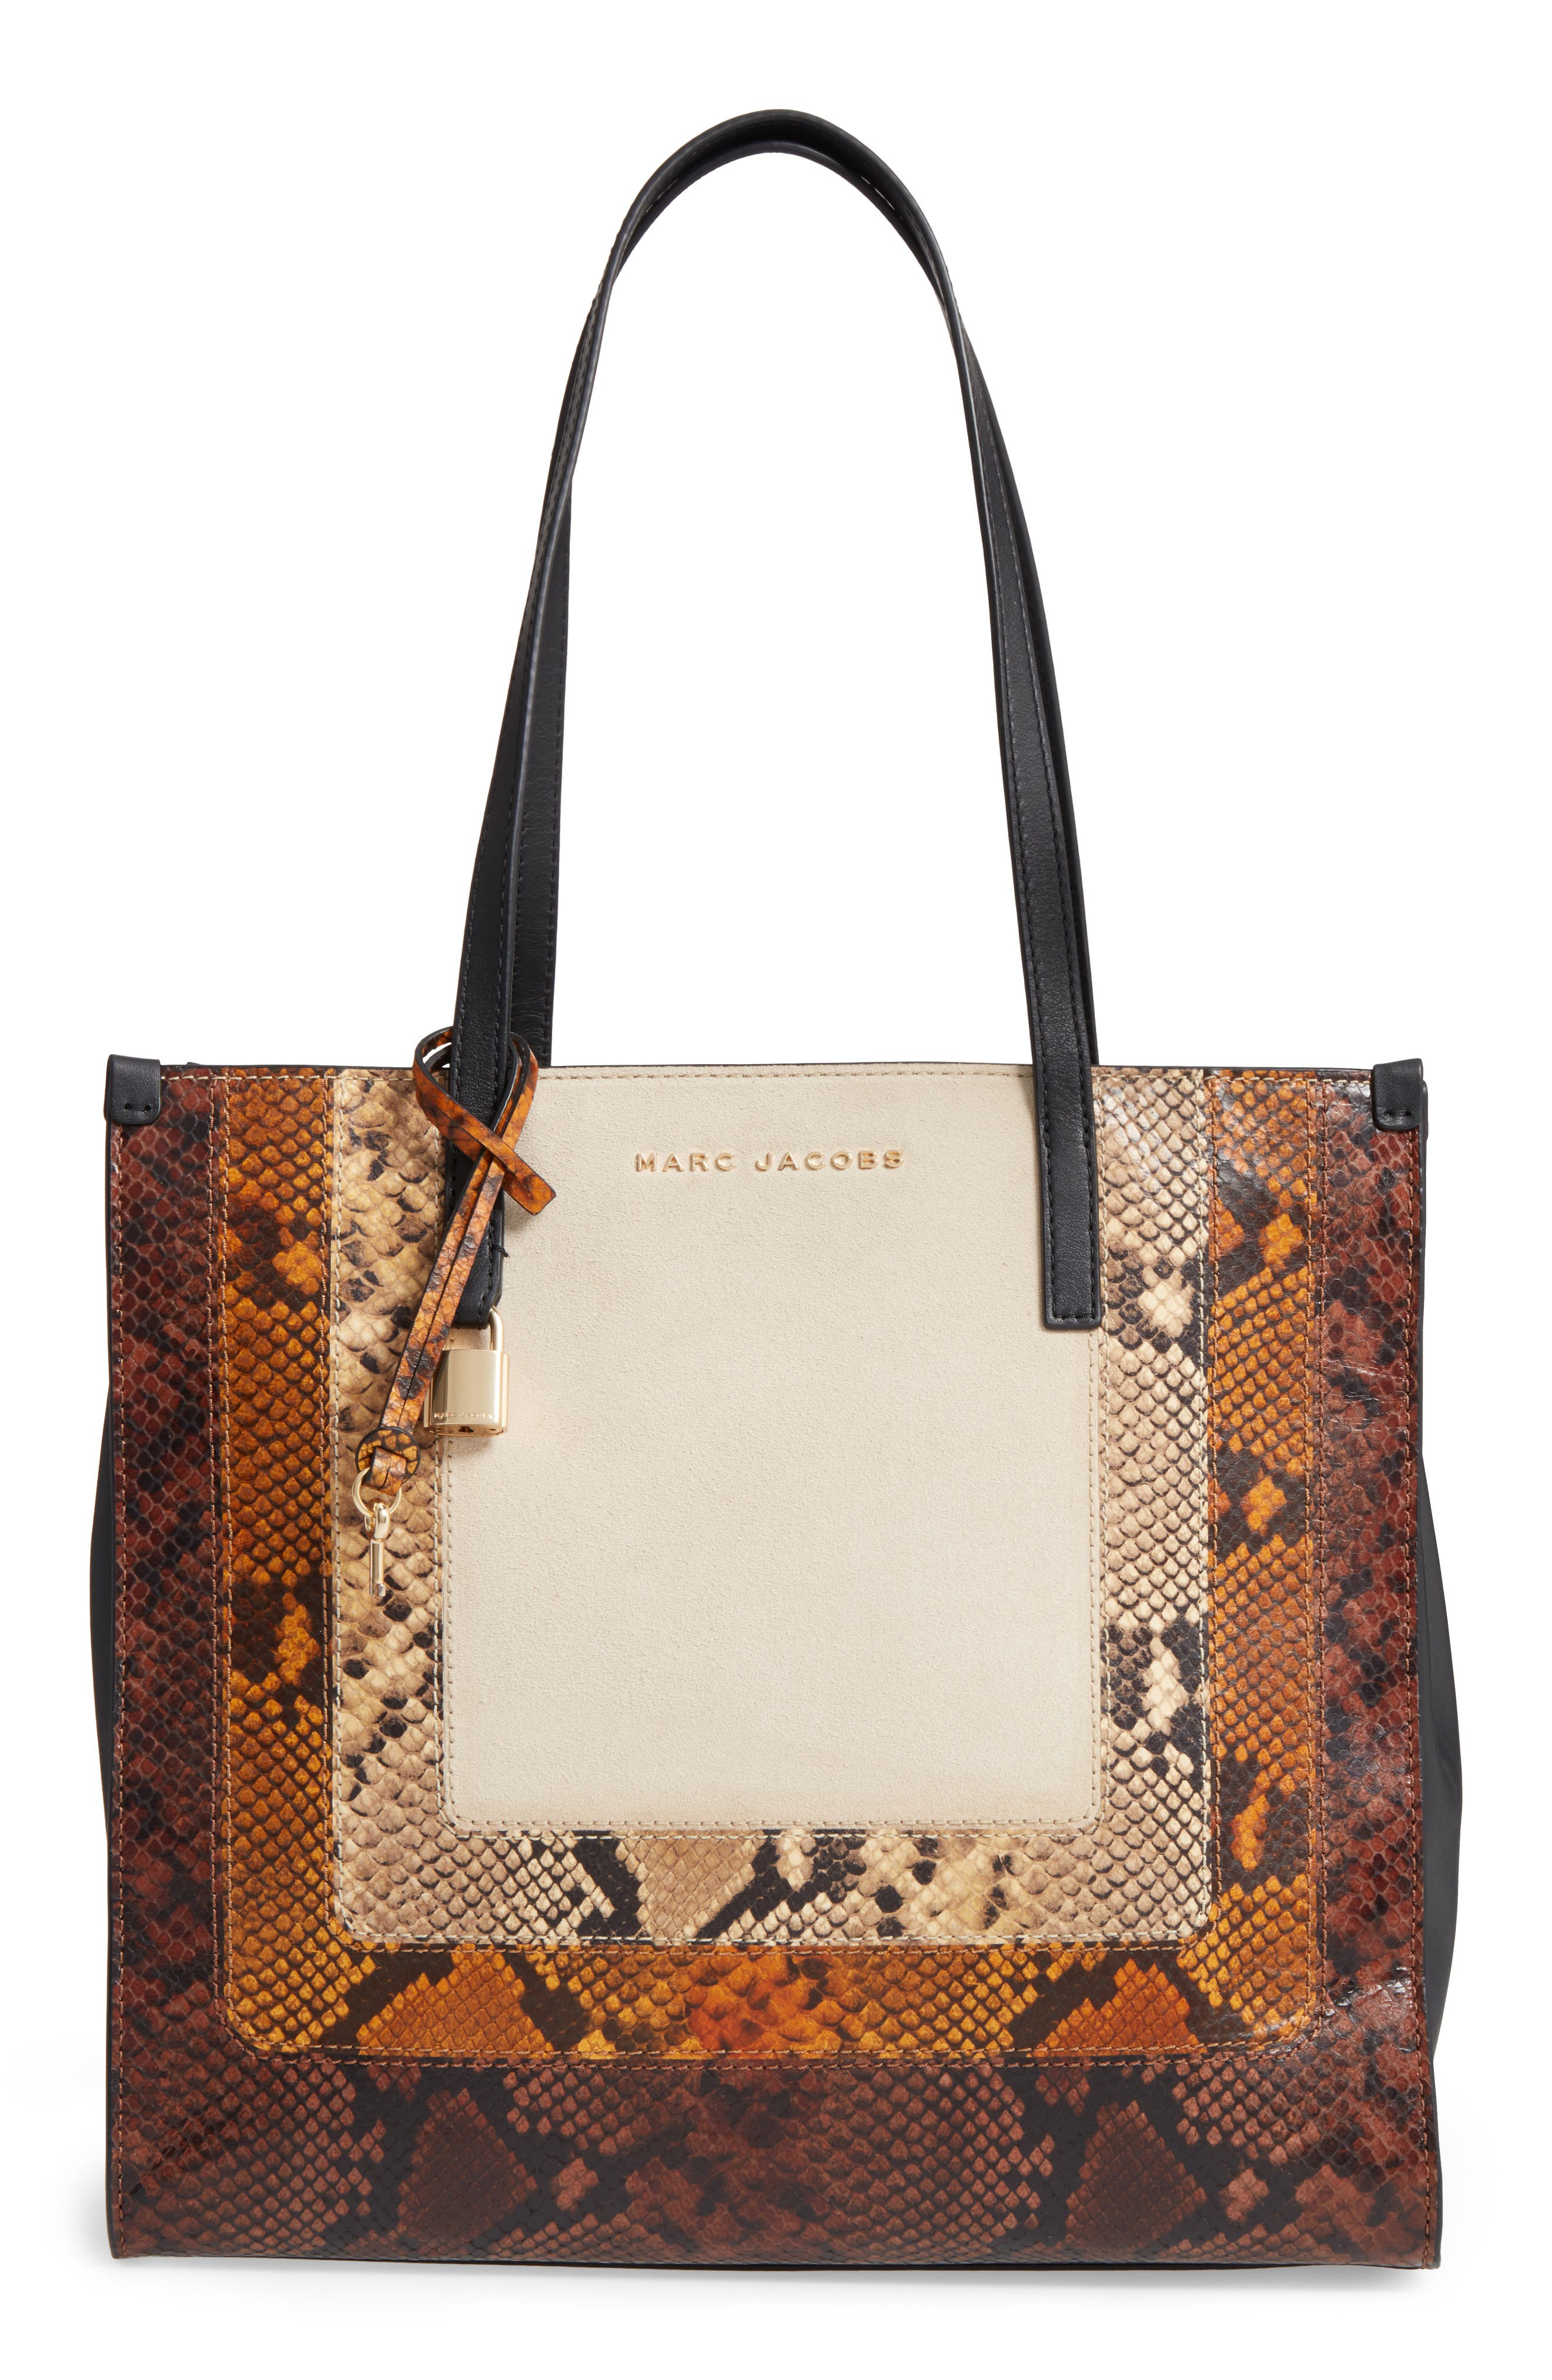 MARC JACOBS The Snake Grind Leather Tote